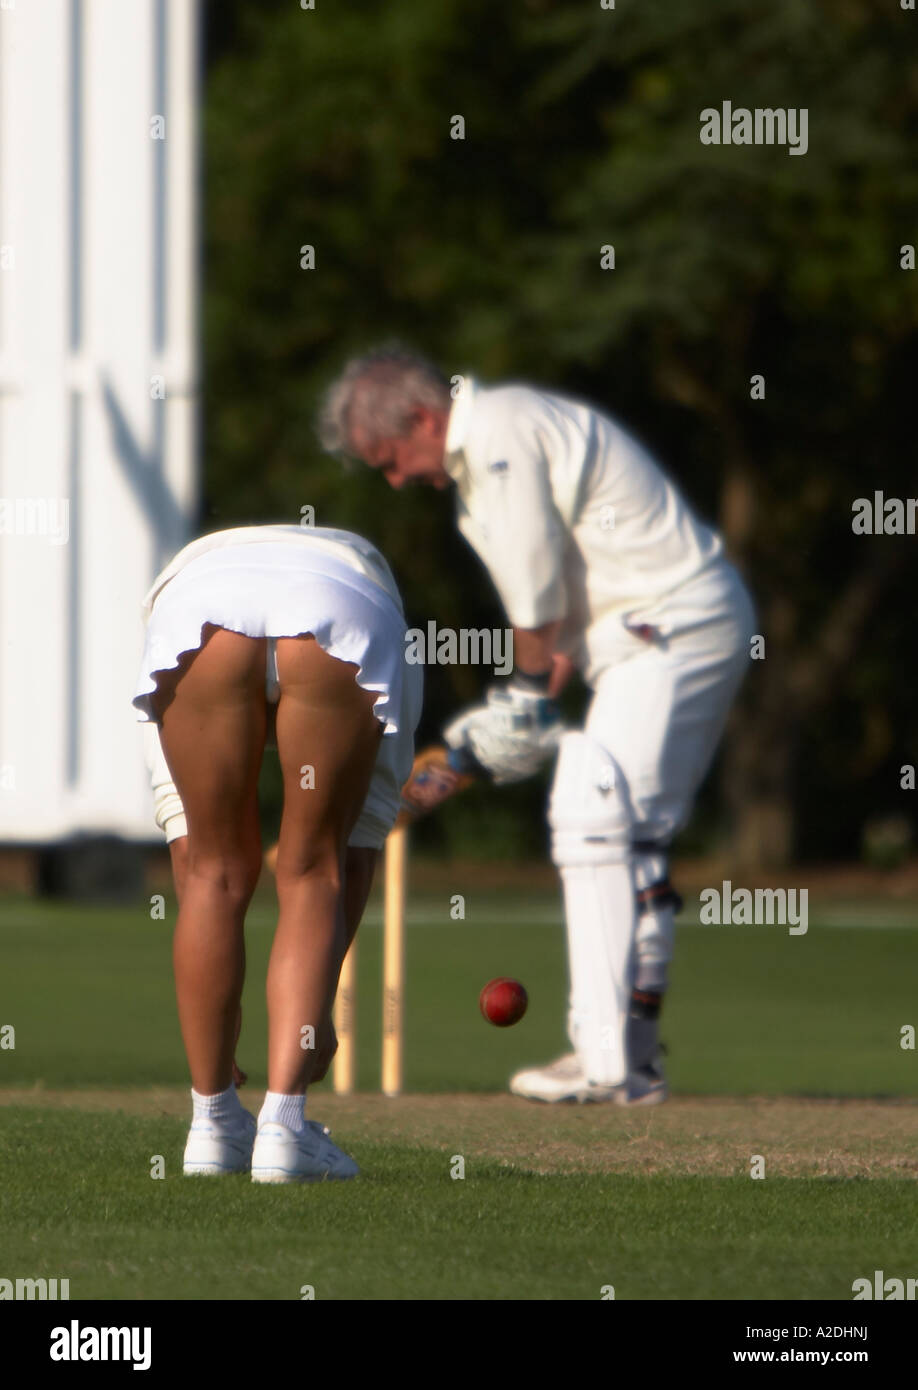 bending over bum stock photos & bending over bum stock images - alamy